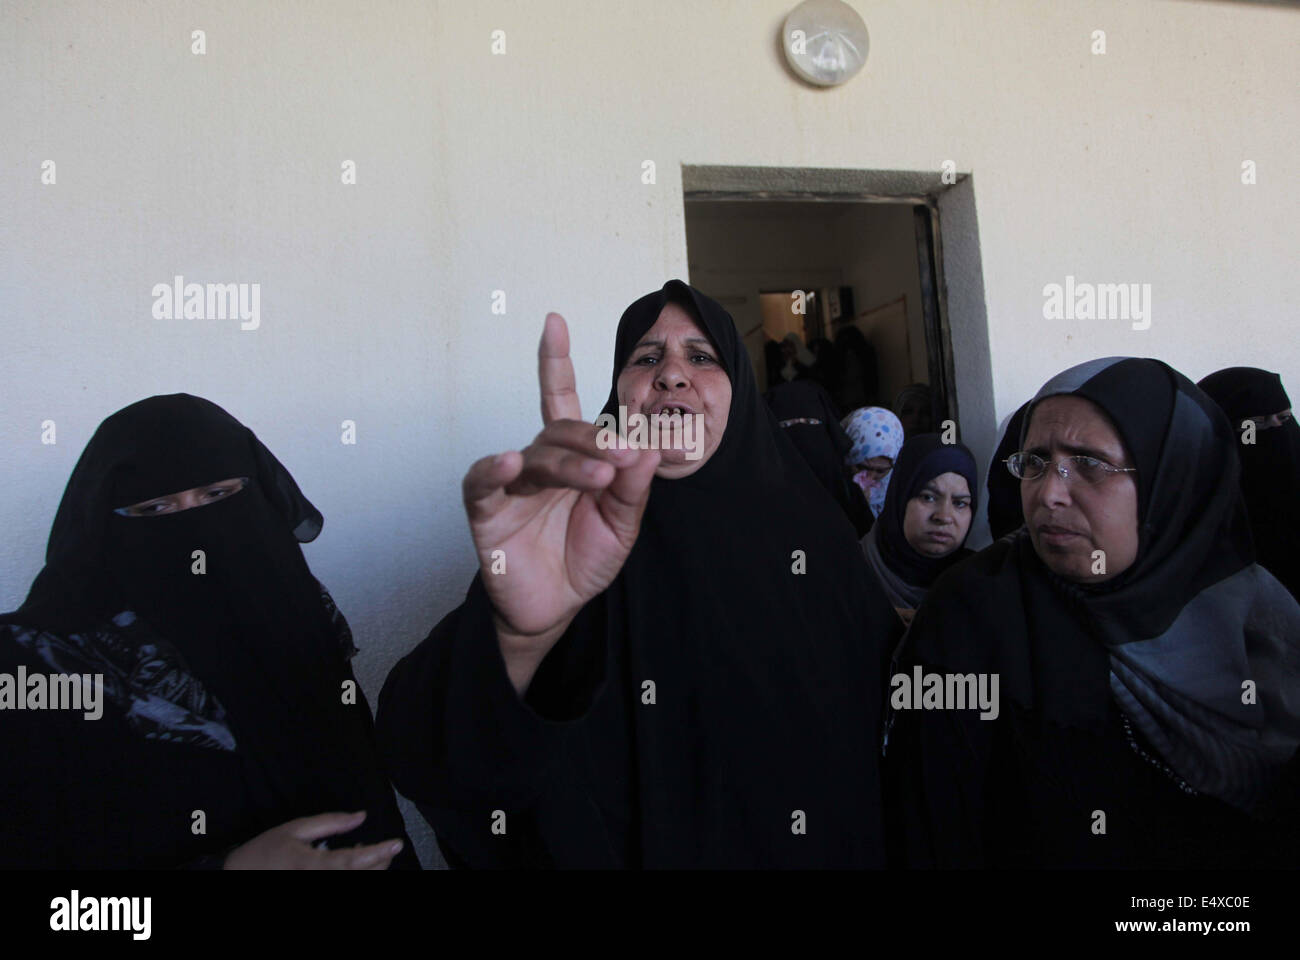 Khan Younis, Gaza Strip, Palestinian Territory. 17th July, 2014. Relatives of Palestinians from the Al-Astal family, - Stock Image